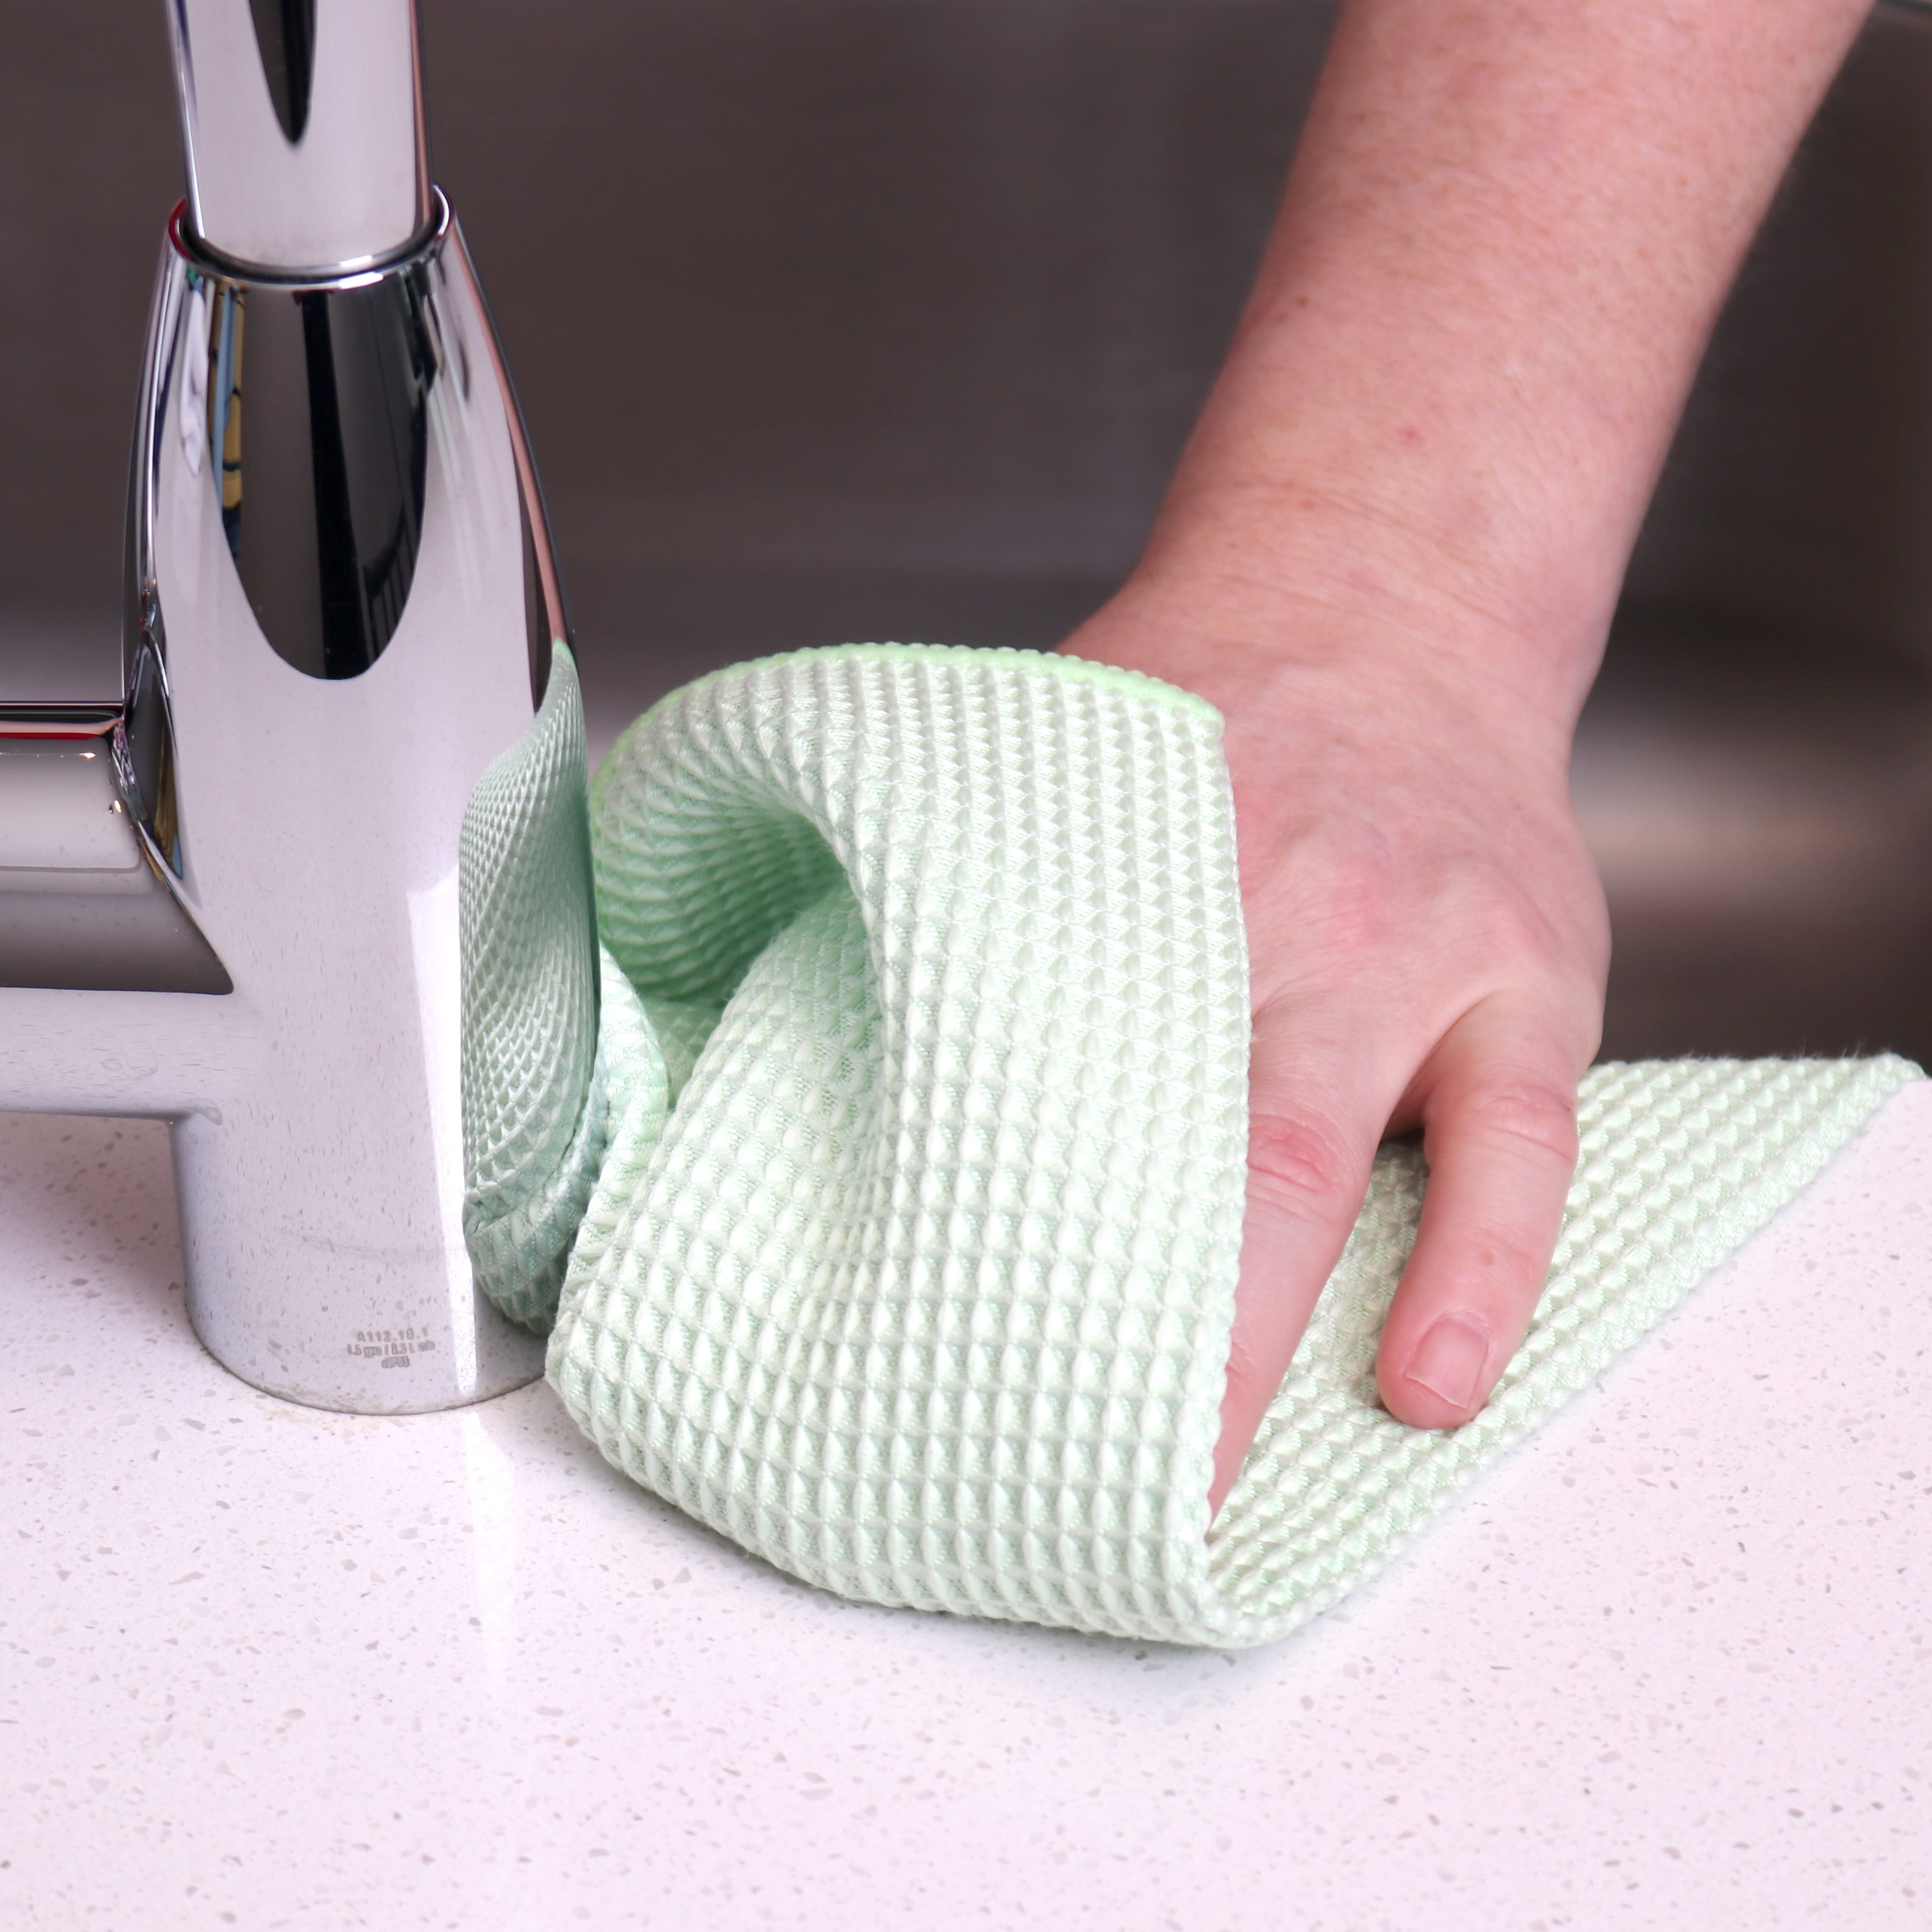 Green Waffle Microfiber Hand Towels used to clean counter